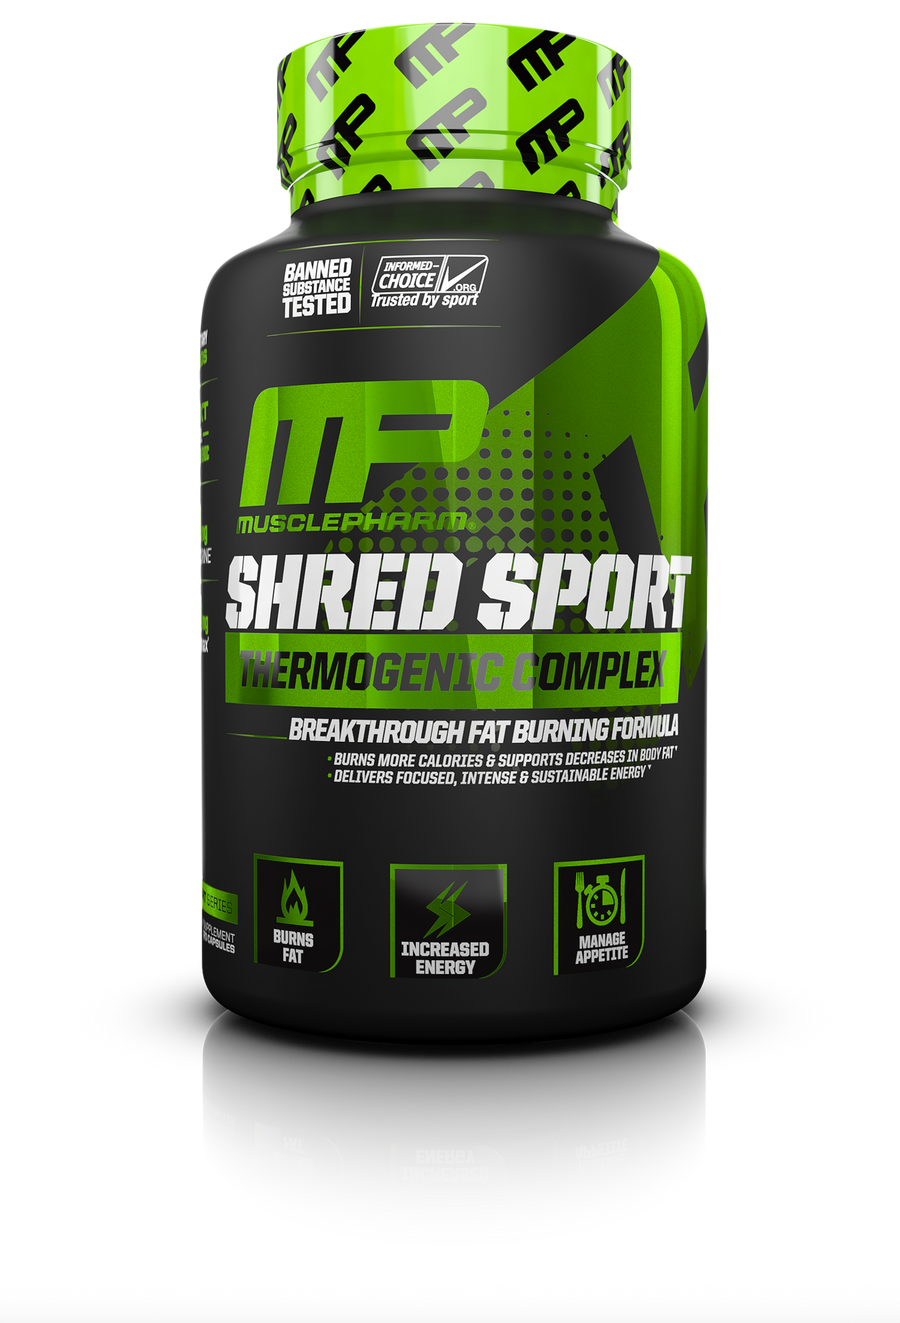 Musclepharm Shred Sport Fat Burner